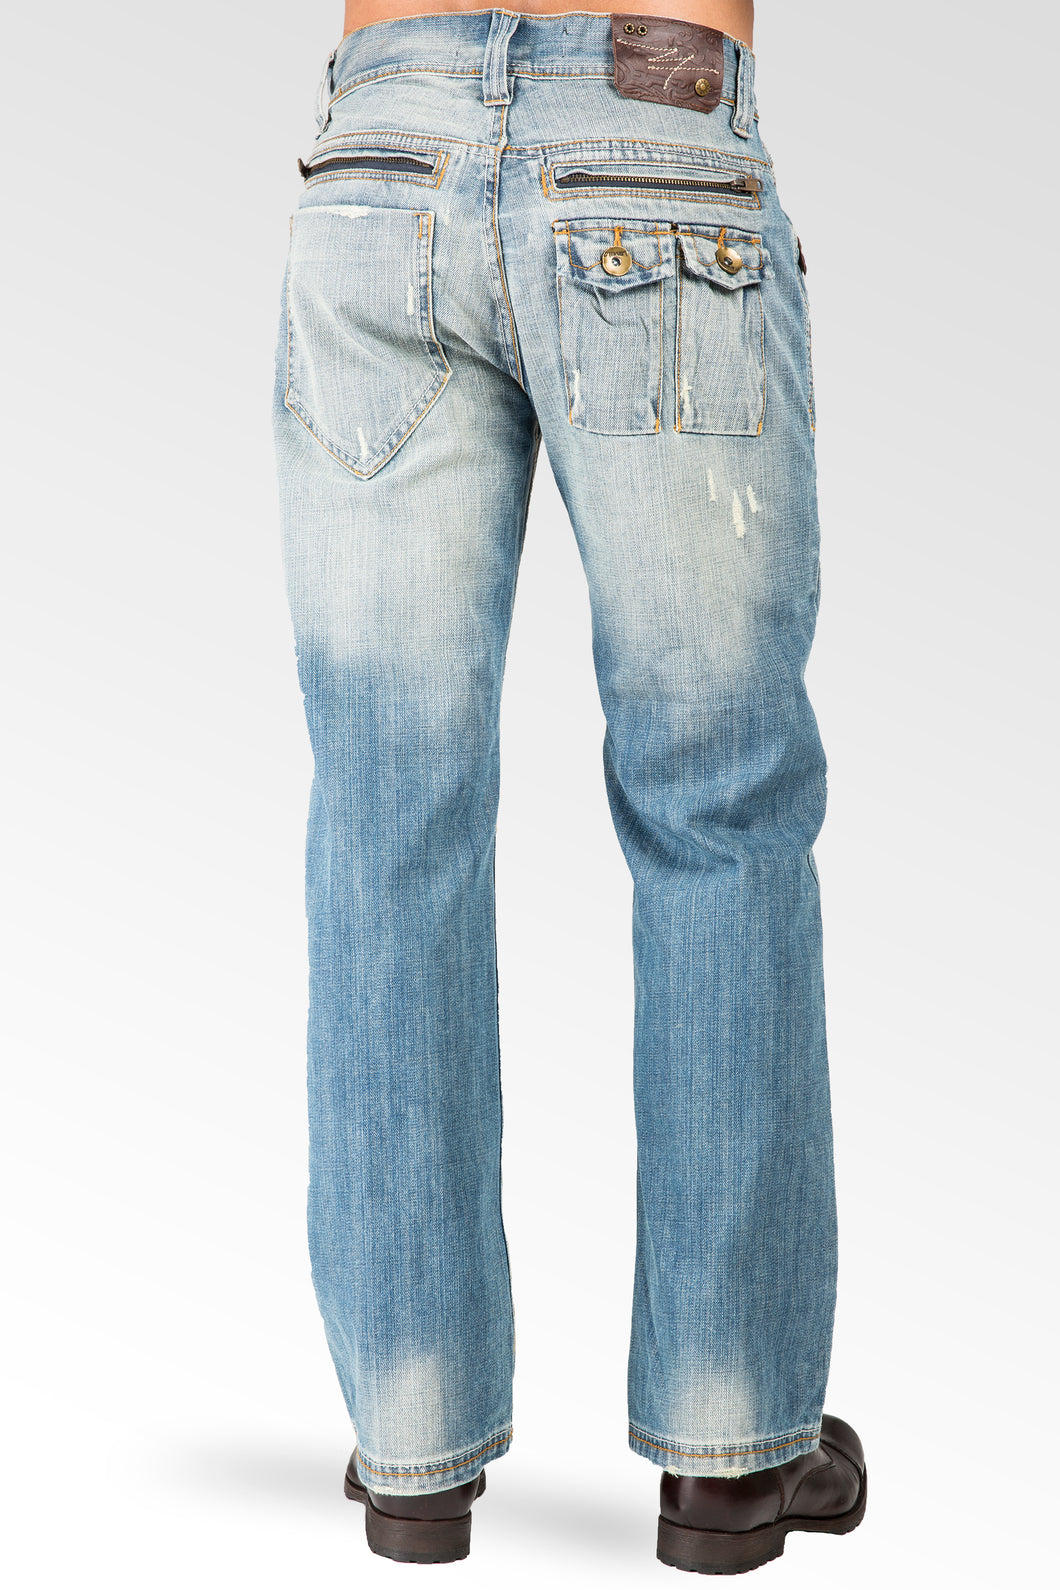 58fa7008377 ... Men's Relaxed Bootcut Premium Denim Light blue Distressed Jean Zipper  Utility Pocket ...